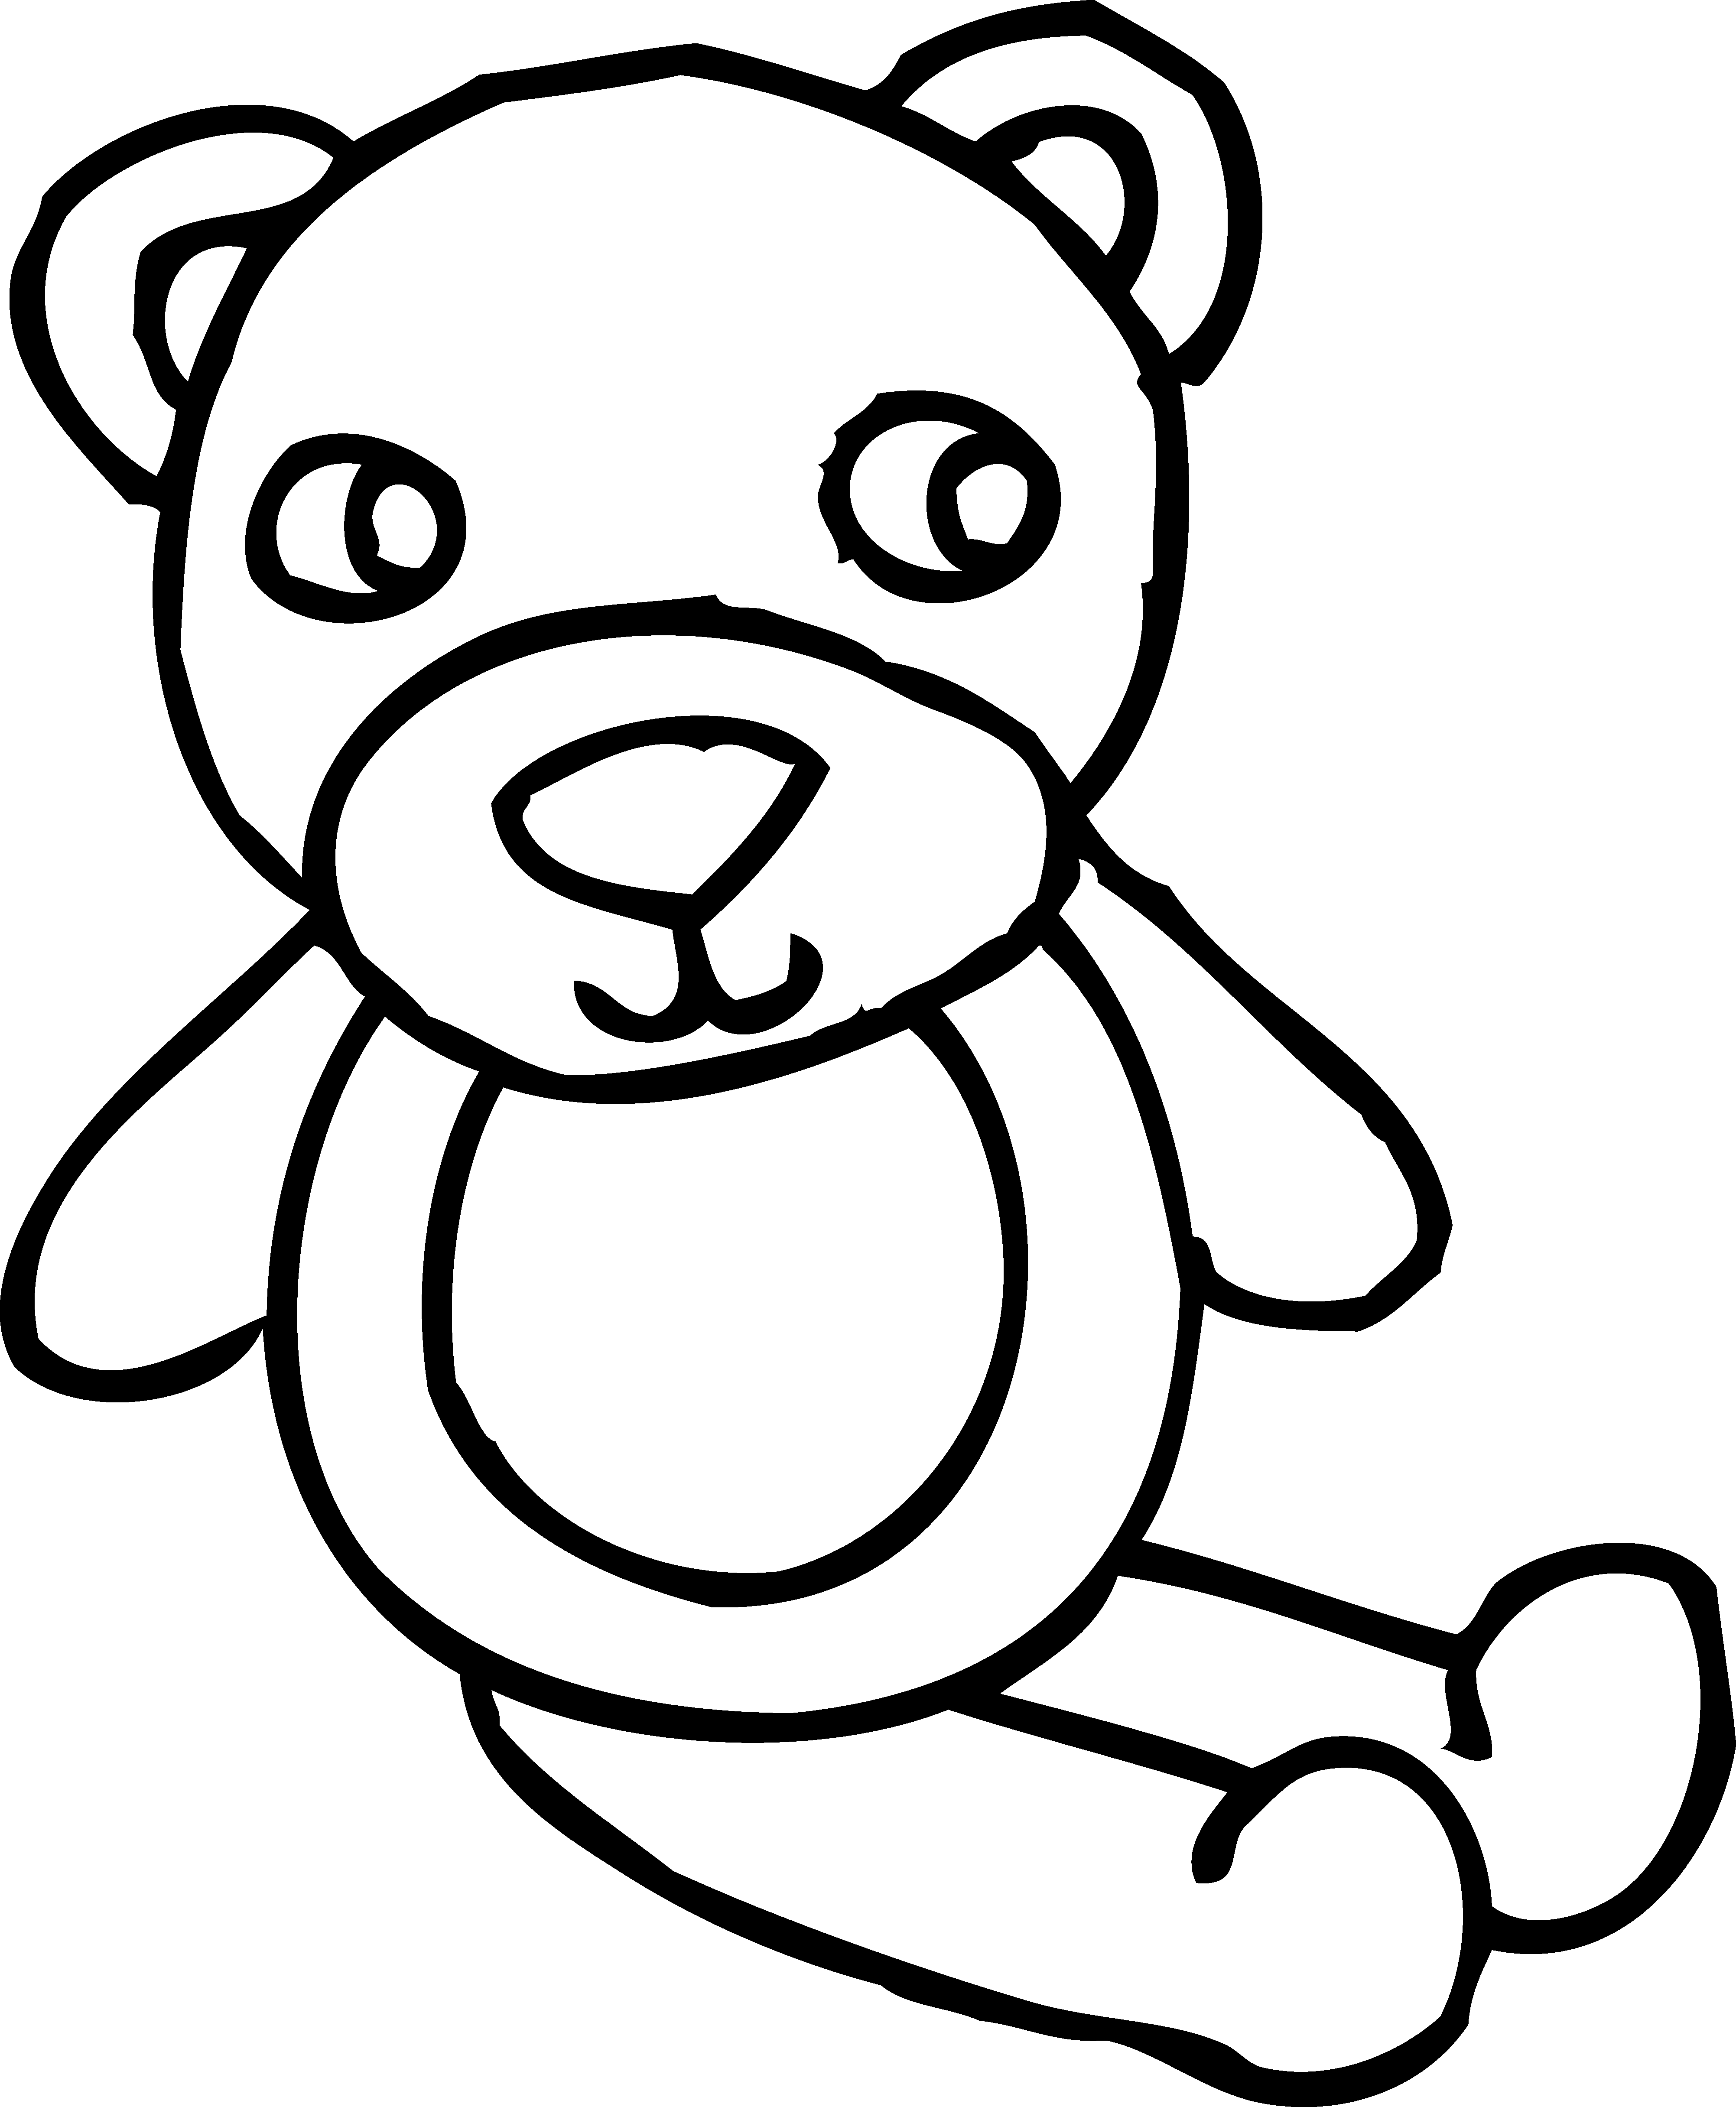 Free Outline Of A Teddy Bear Download Free Clip Art Free Clip Art On Clipart Library